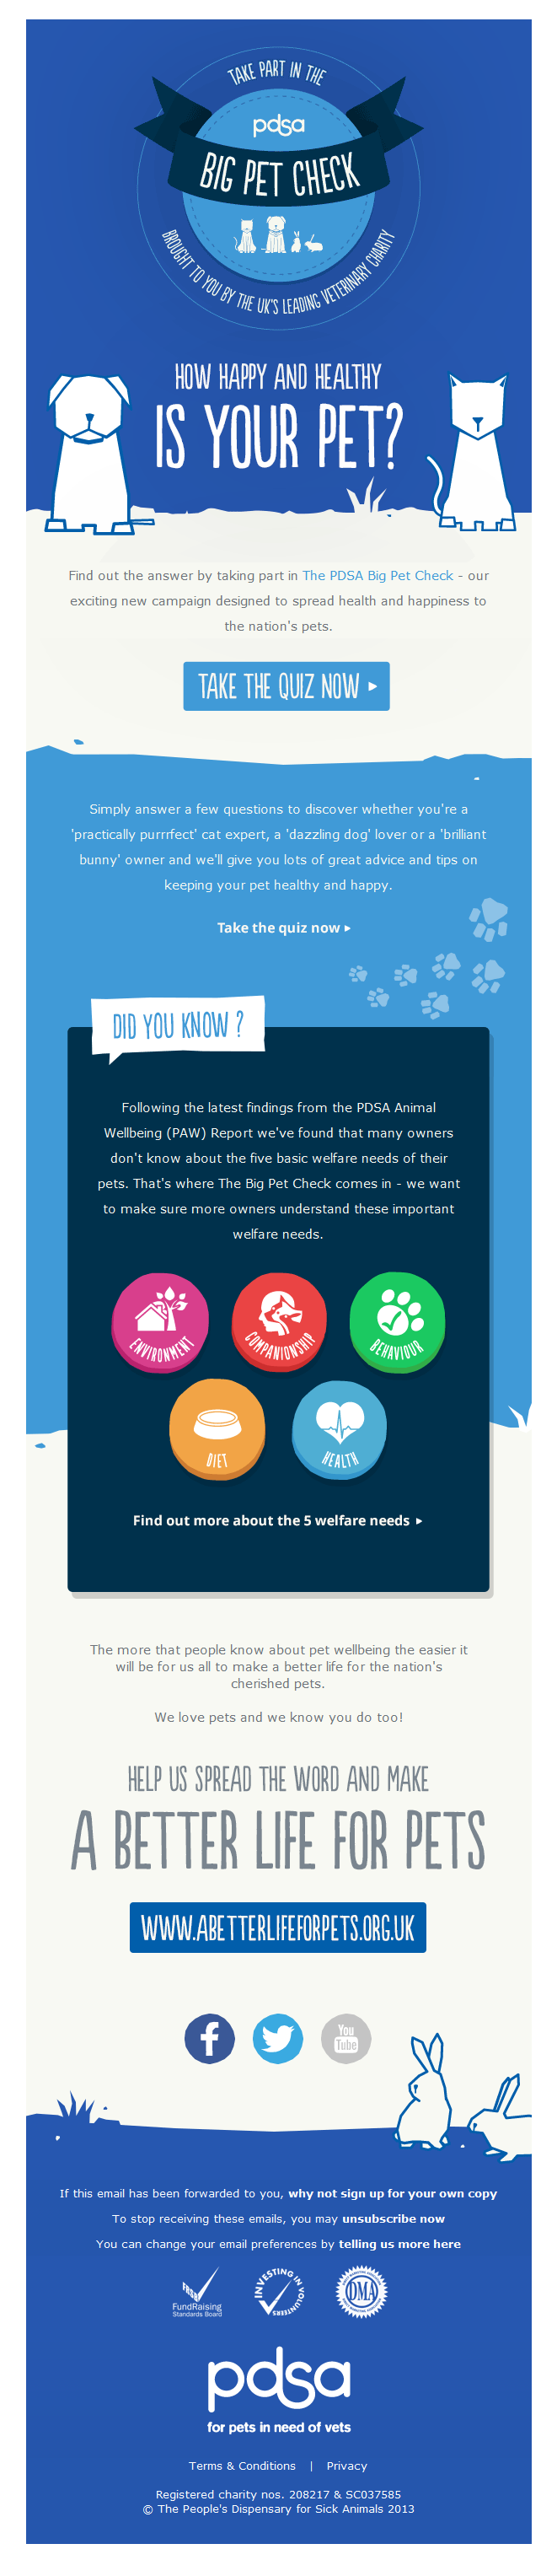 Charity Emails -PDSA - Take part in the PDSA Big Pet Check!